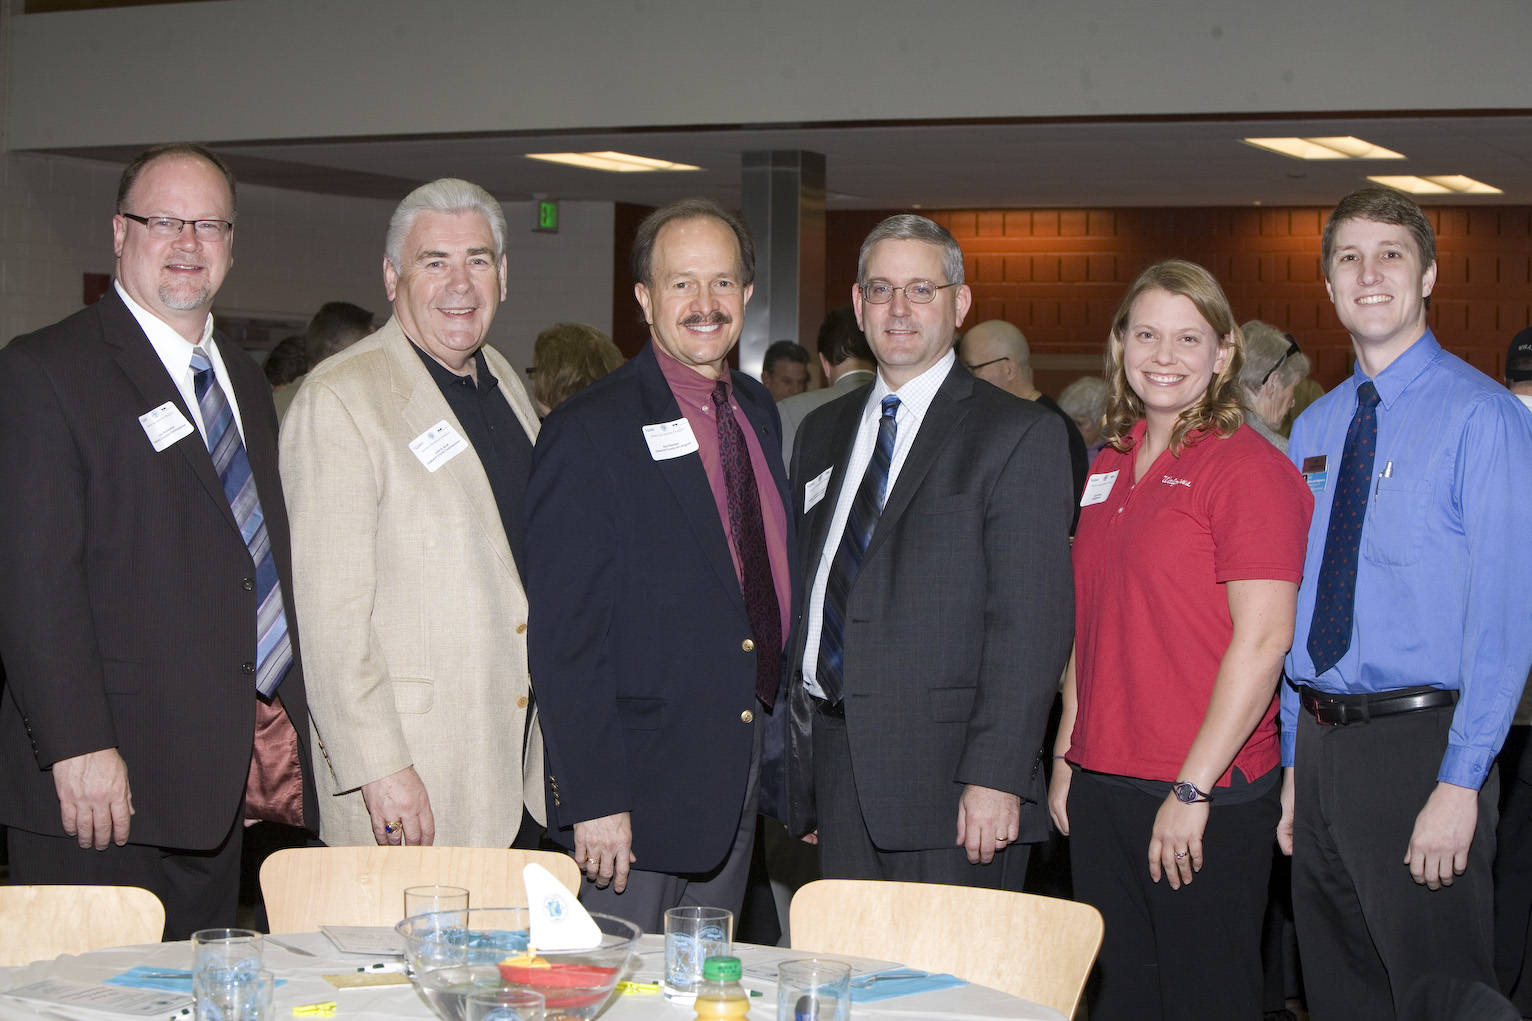 Pictured left to right are: Oakland County Commissioners Jim Runestad and John A. Scott, along with Oakland County International Airport Director Karl Randall, Judge Richard Kuhn, Jr, and Walgreen Store Managers: Gail Vires and Eric Krosgrud